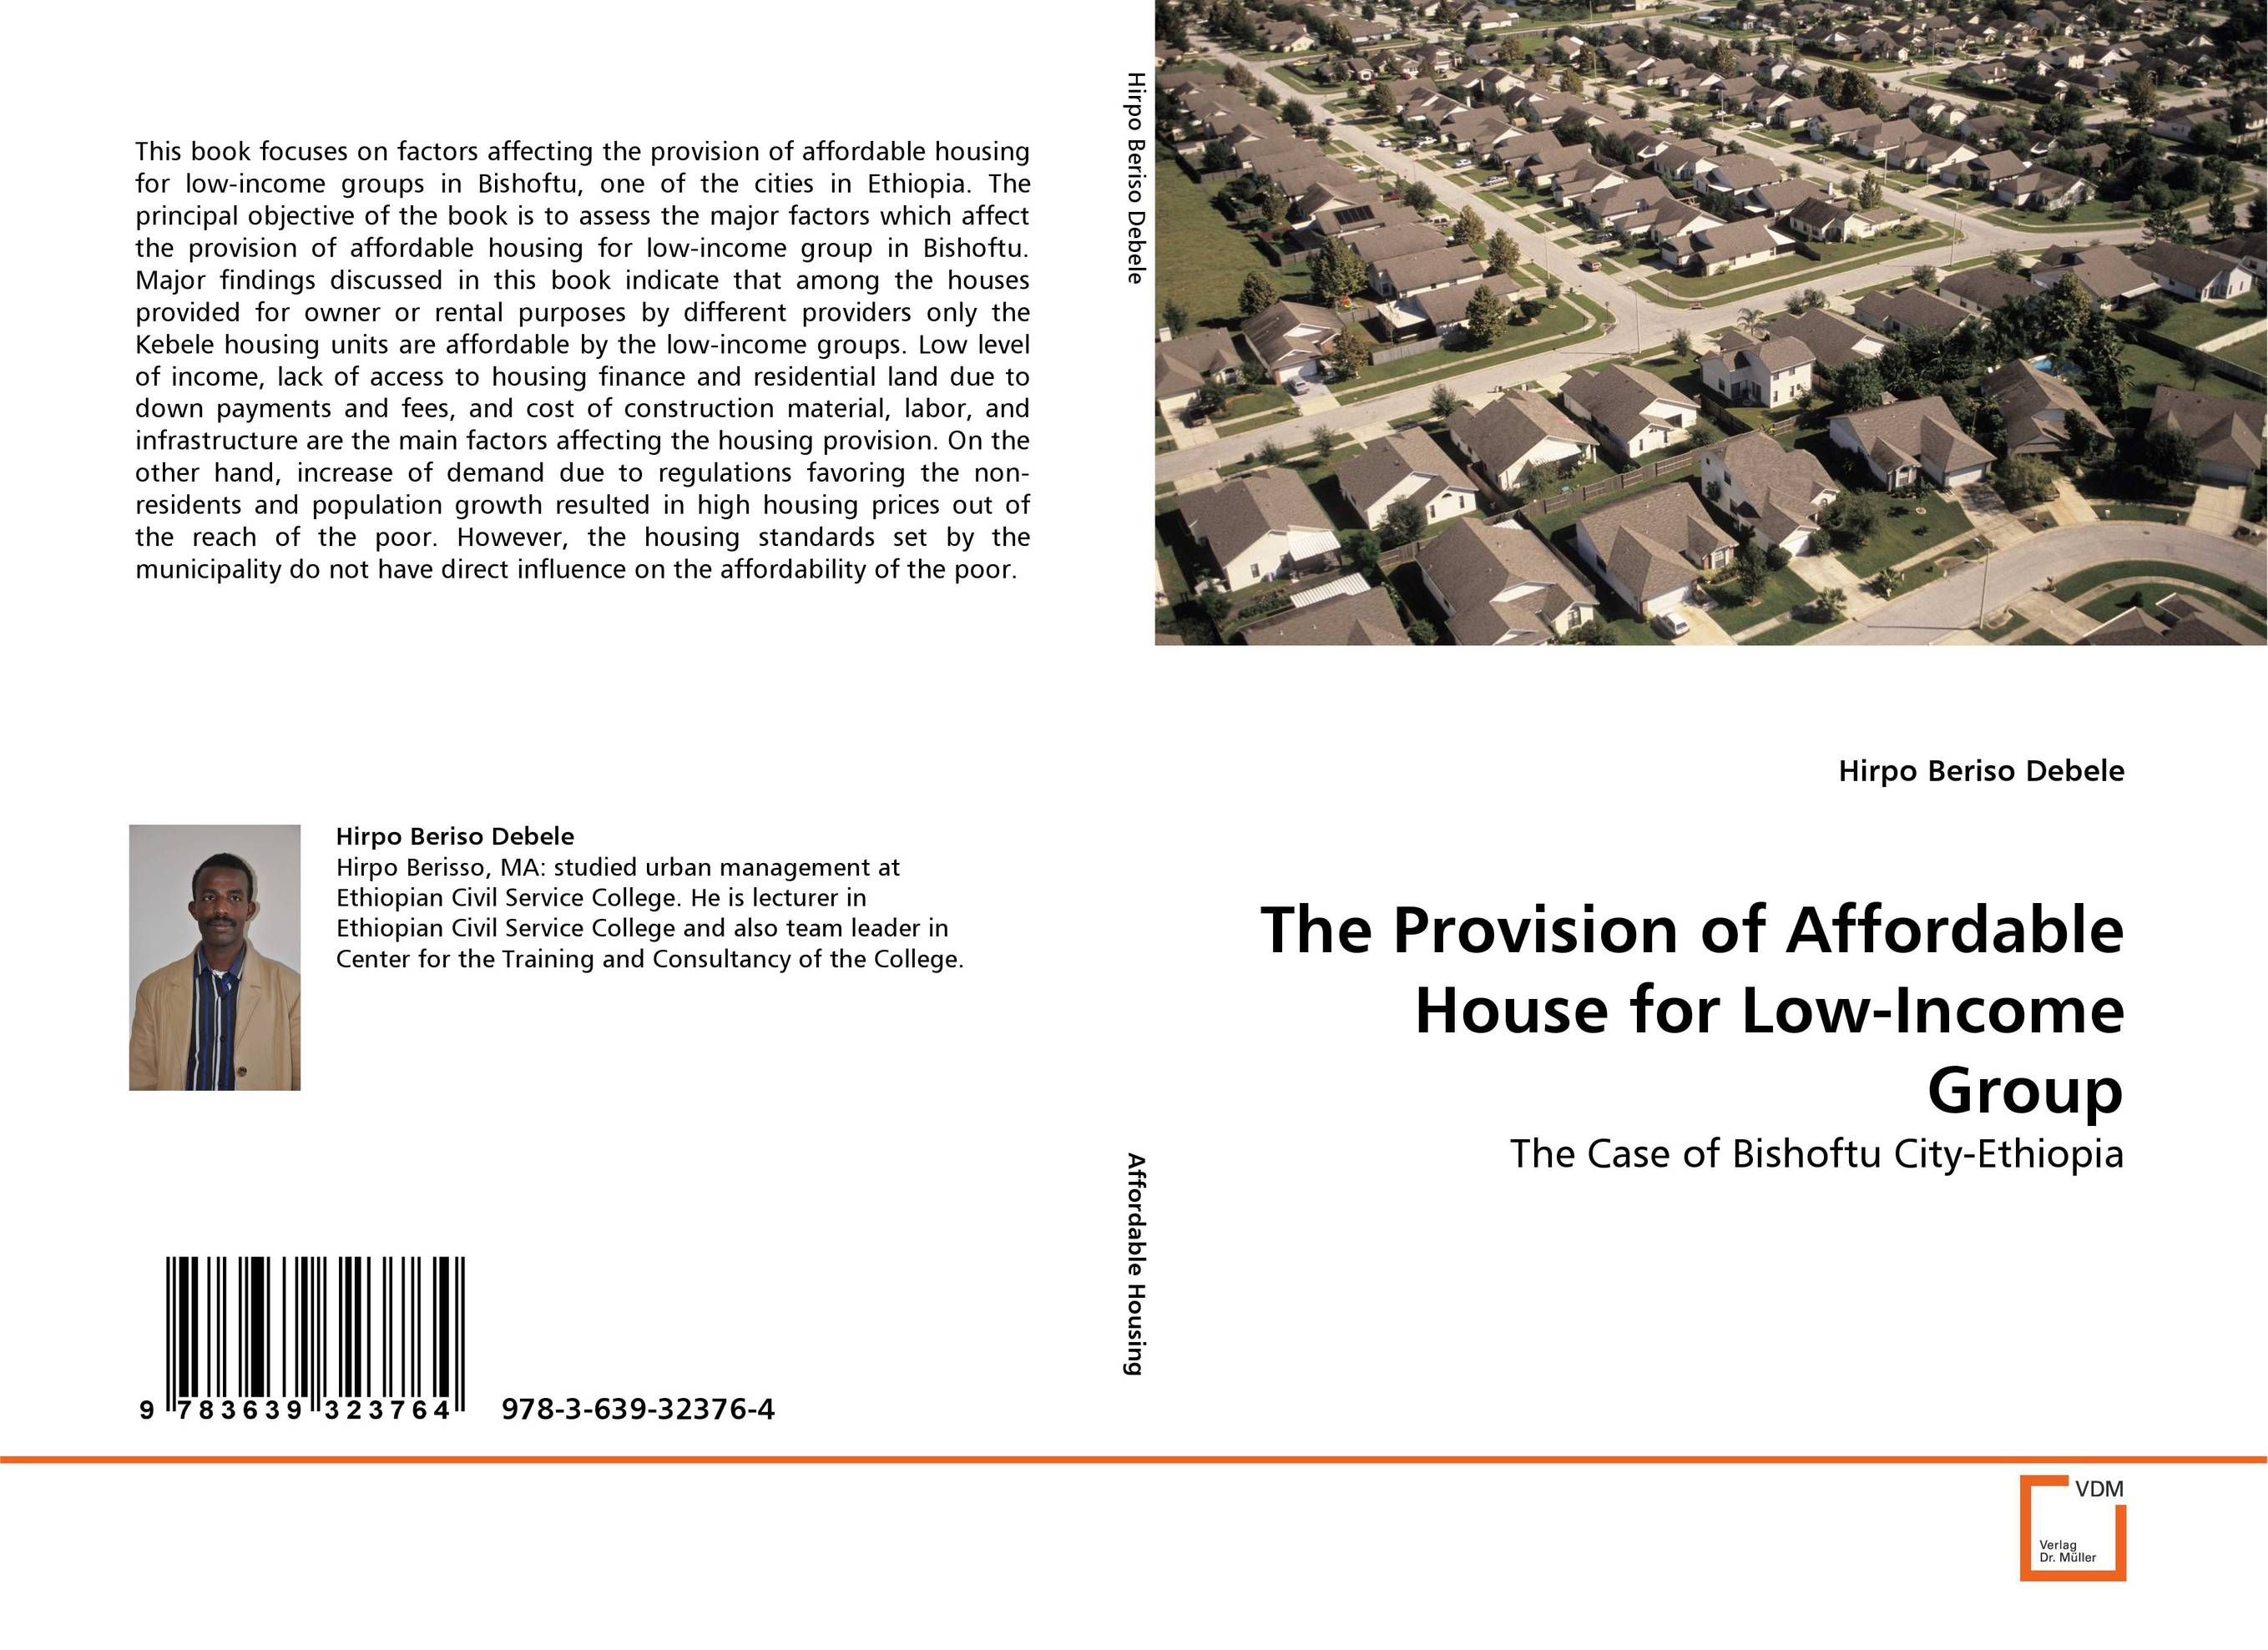 The Provision of Affordable House for Low-Income Group land tenure housing and low income earners